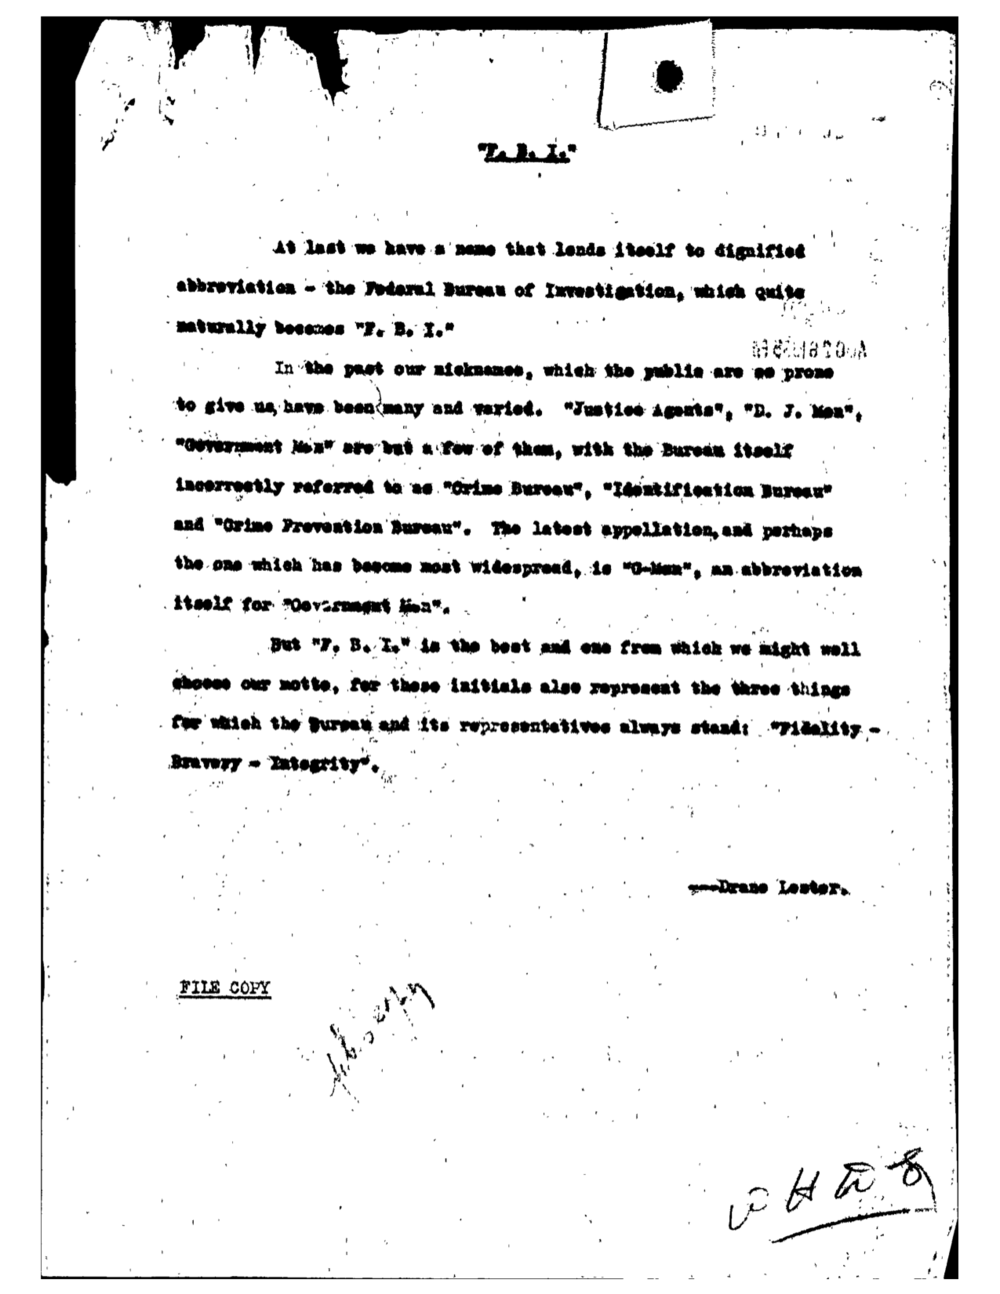 Lester's original document (copy) from FBI files. Left click to enlarge...